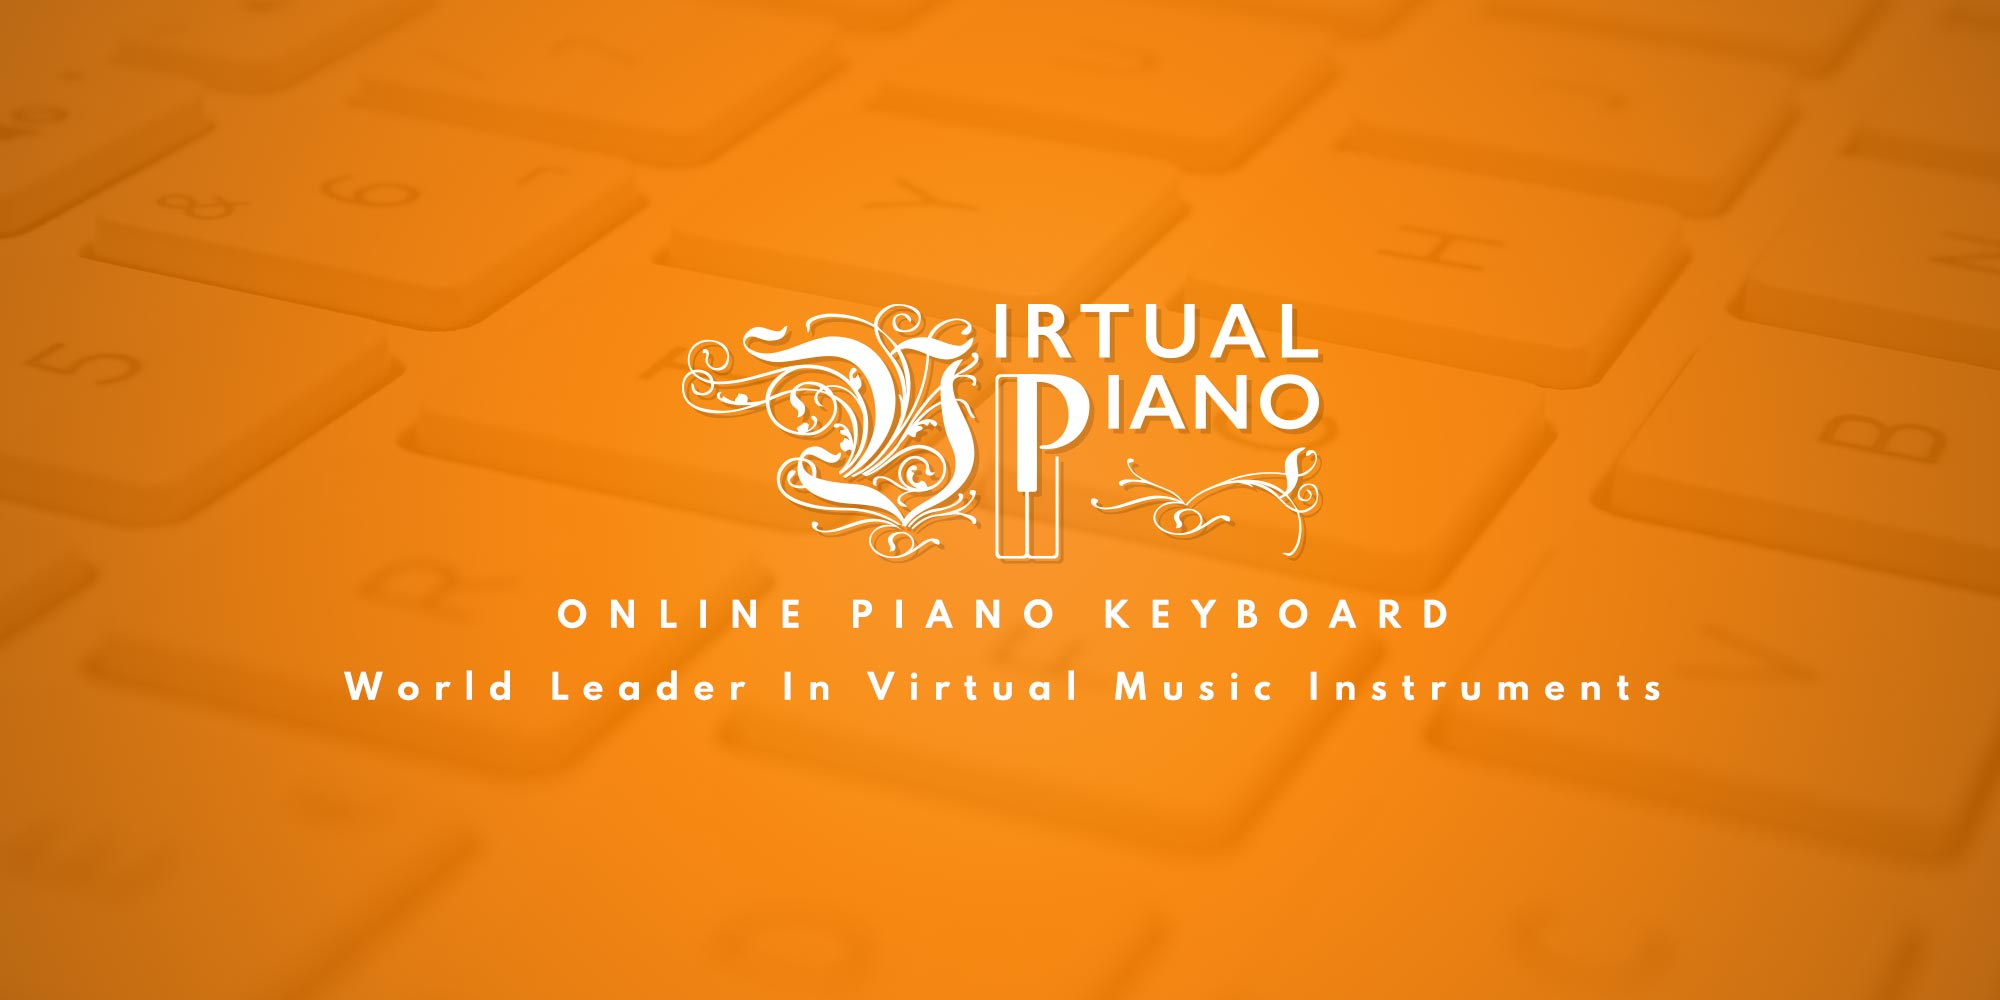 Online Piano Keyboard and Virtual Music Instruments